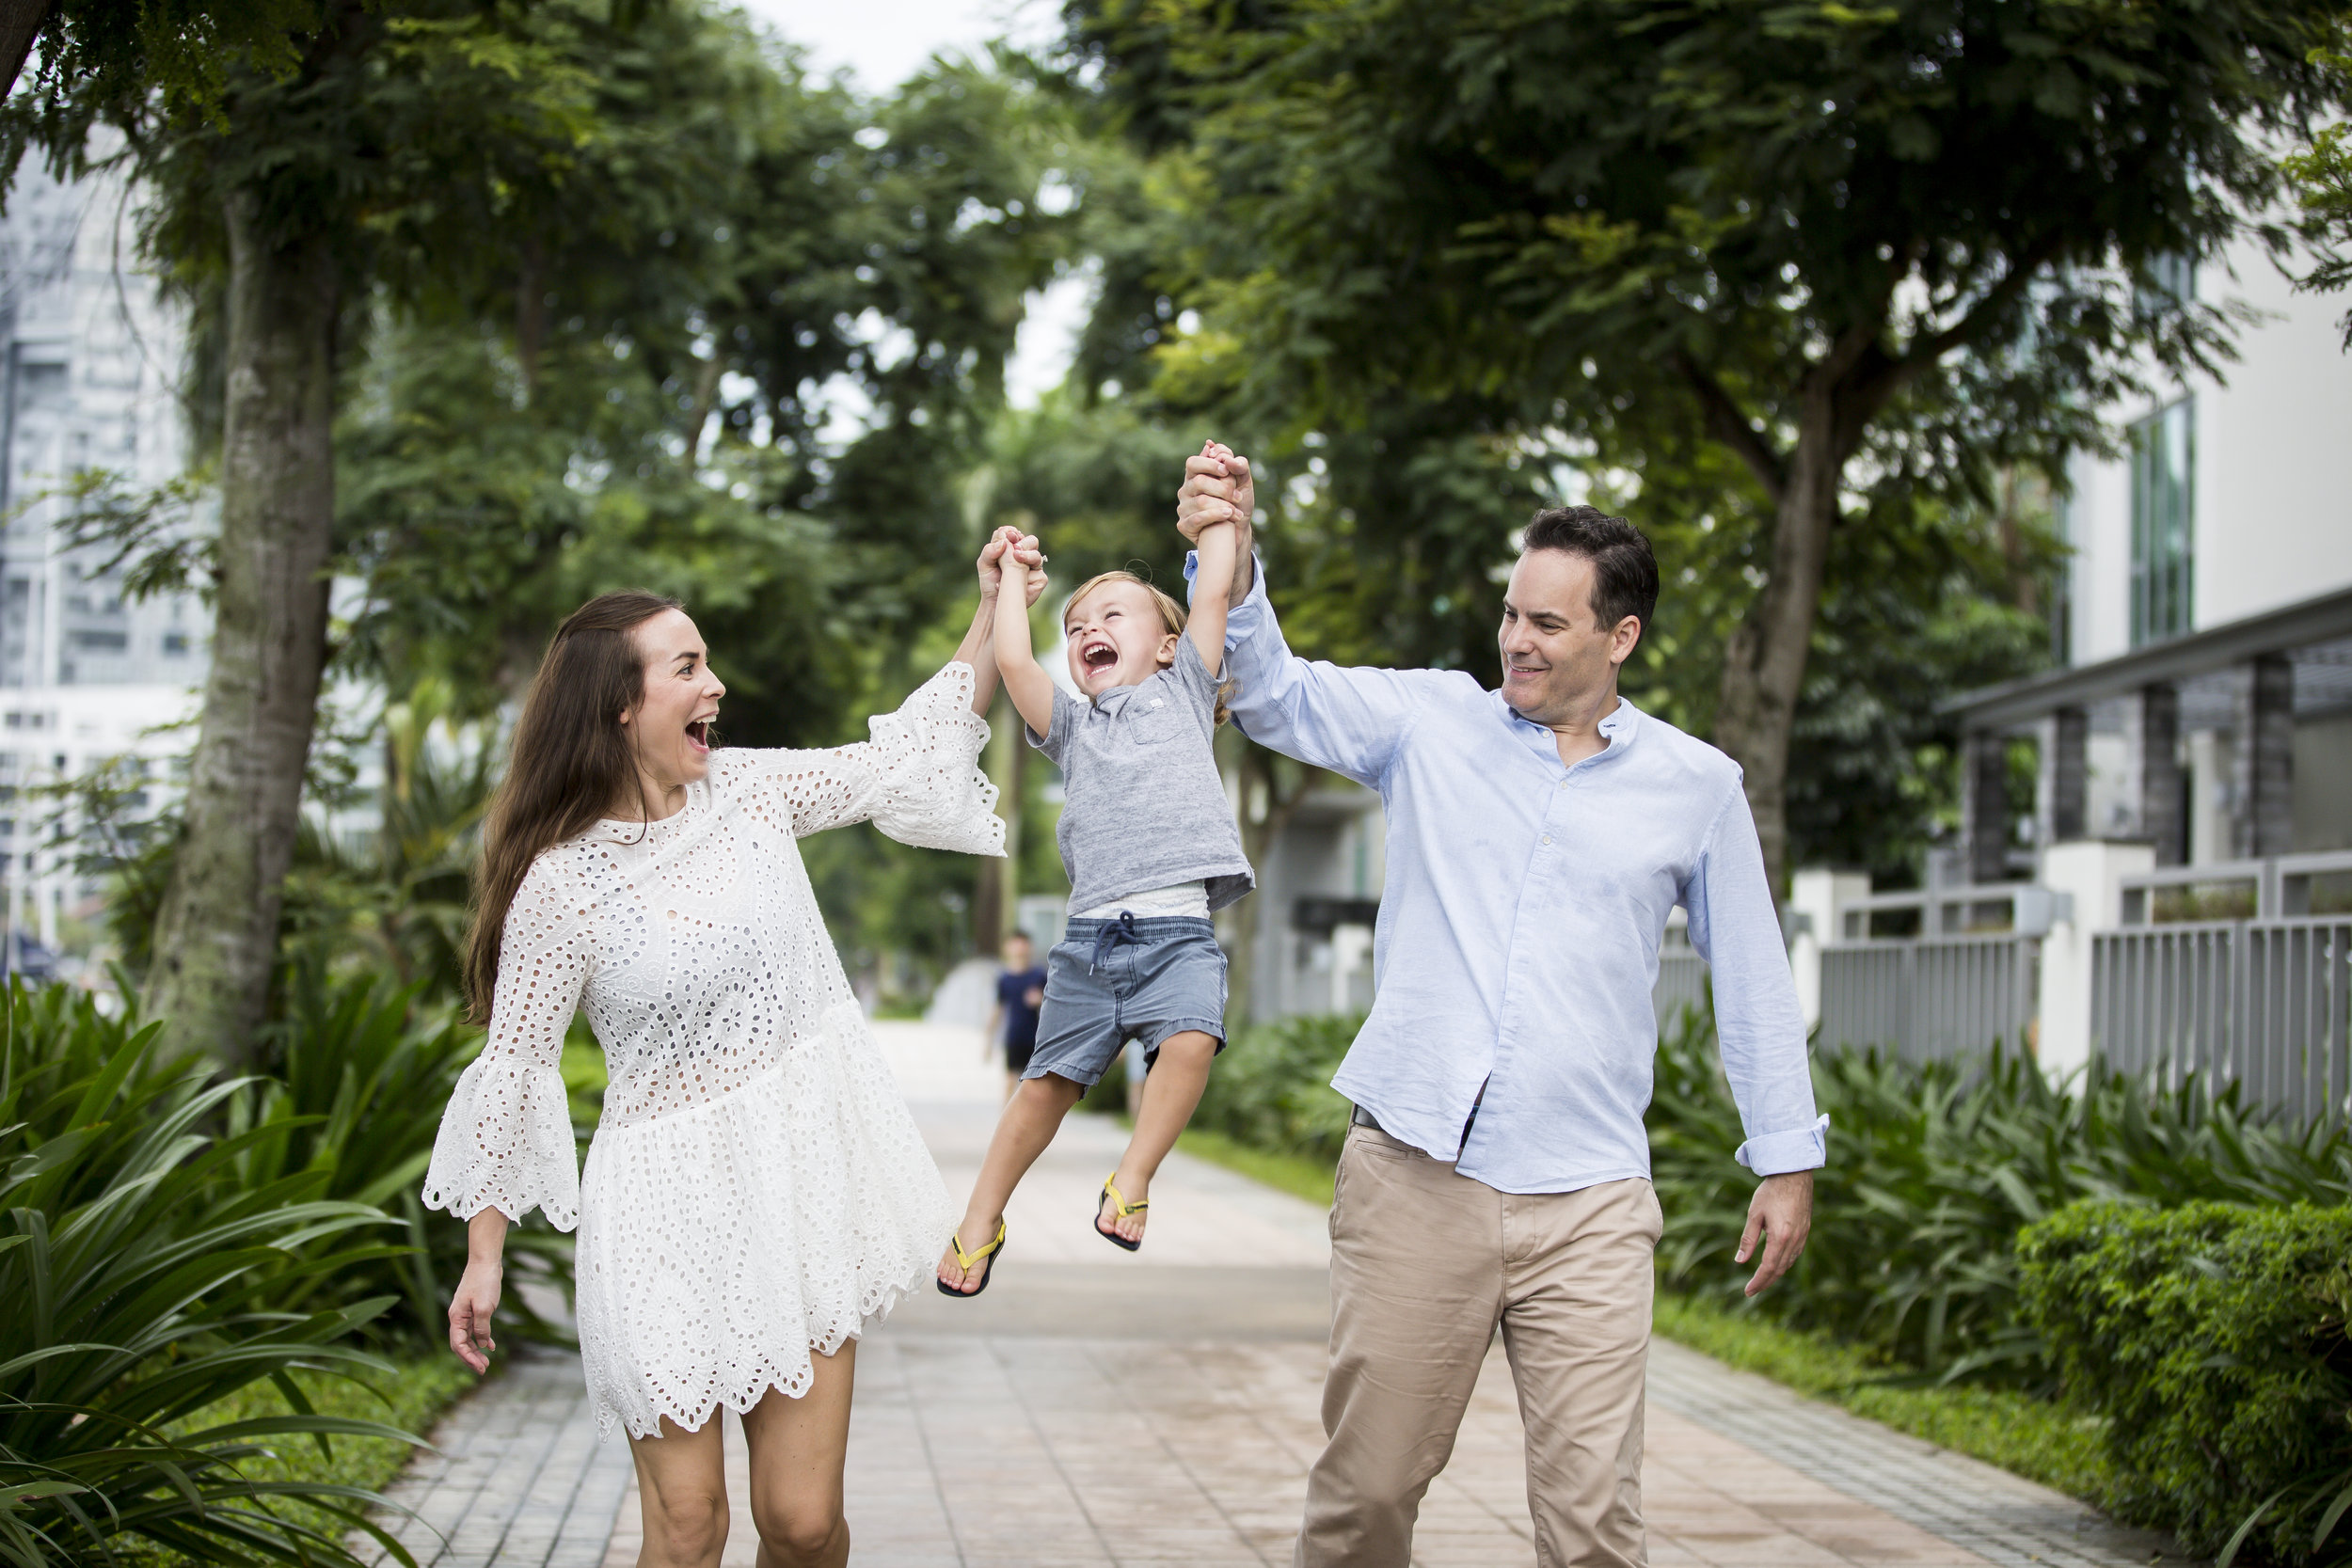 Family Photographer Singapore Vision Photography Daniel Parker home visit